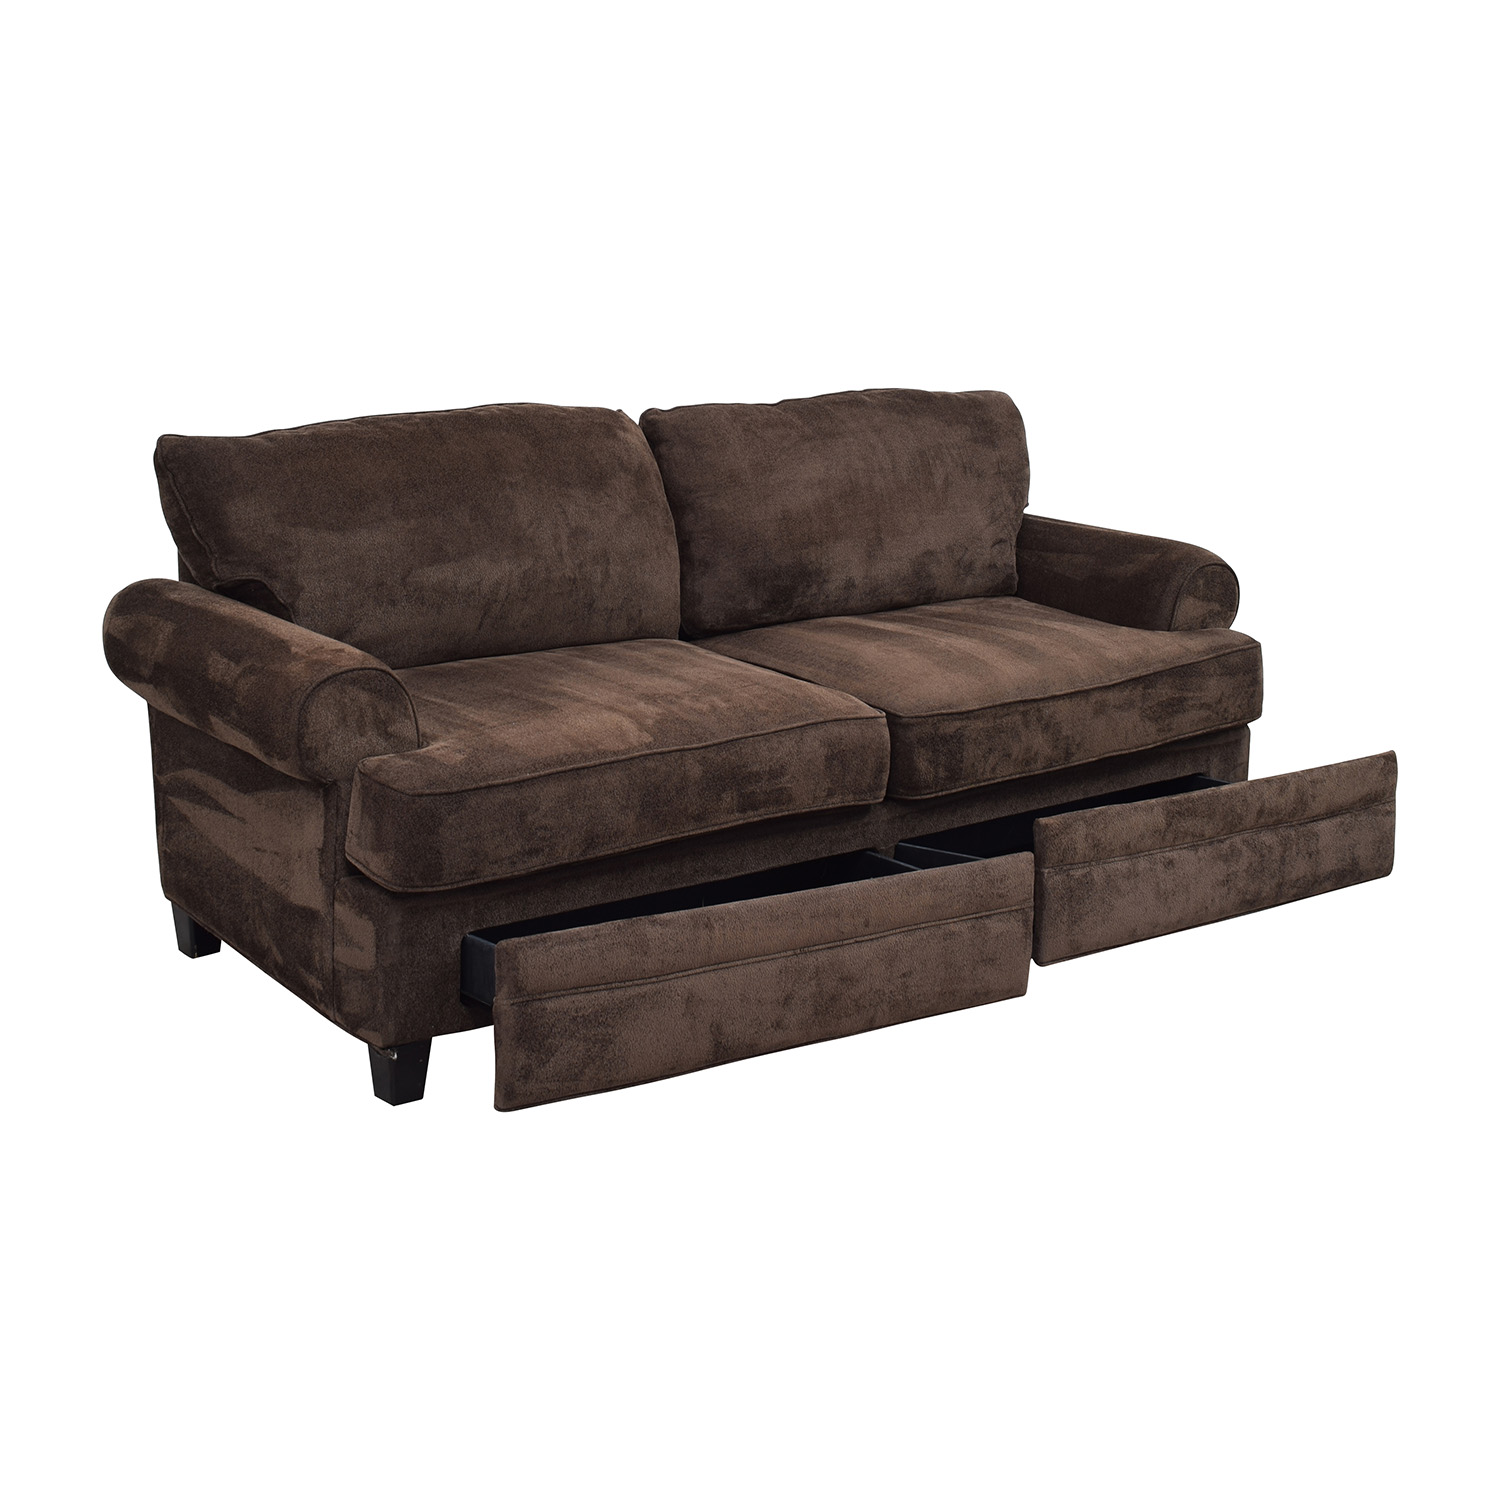 Bobs Furniture Sofas